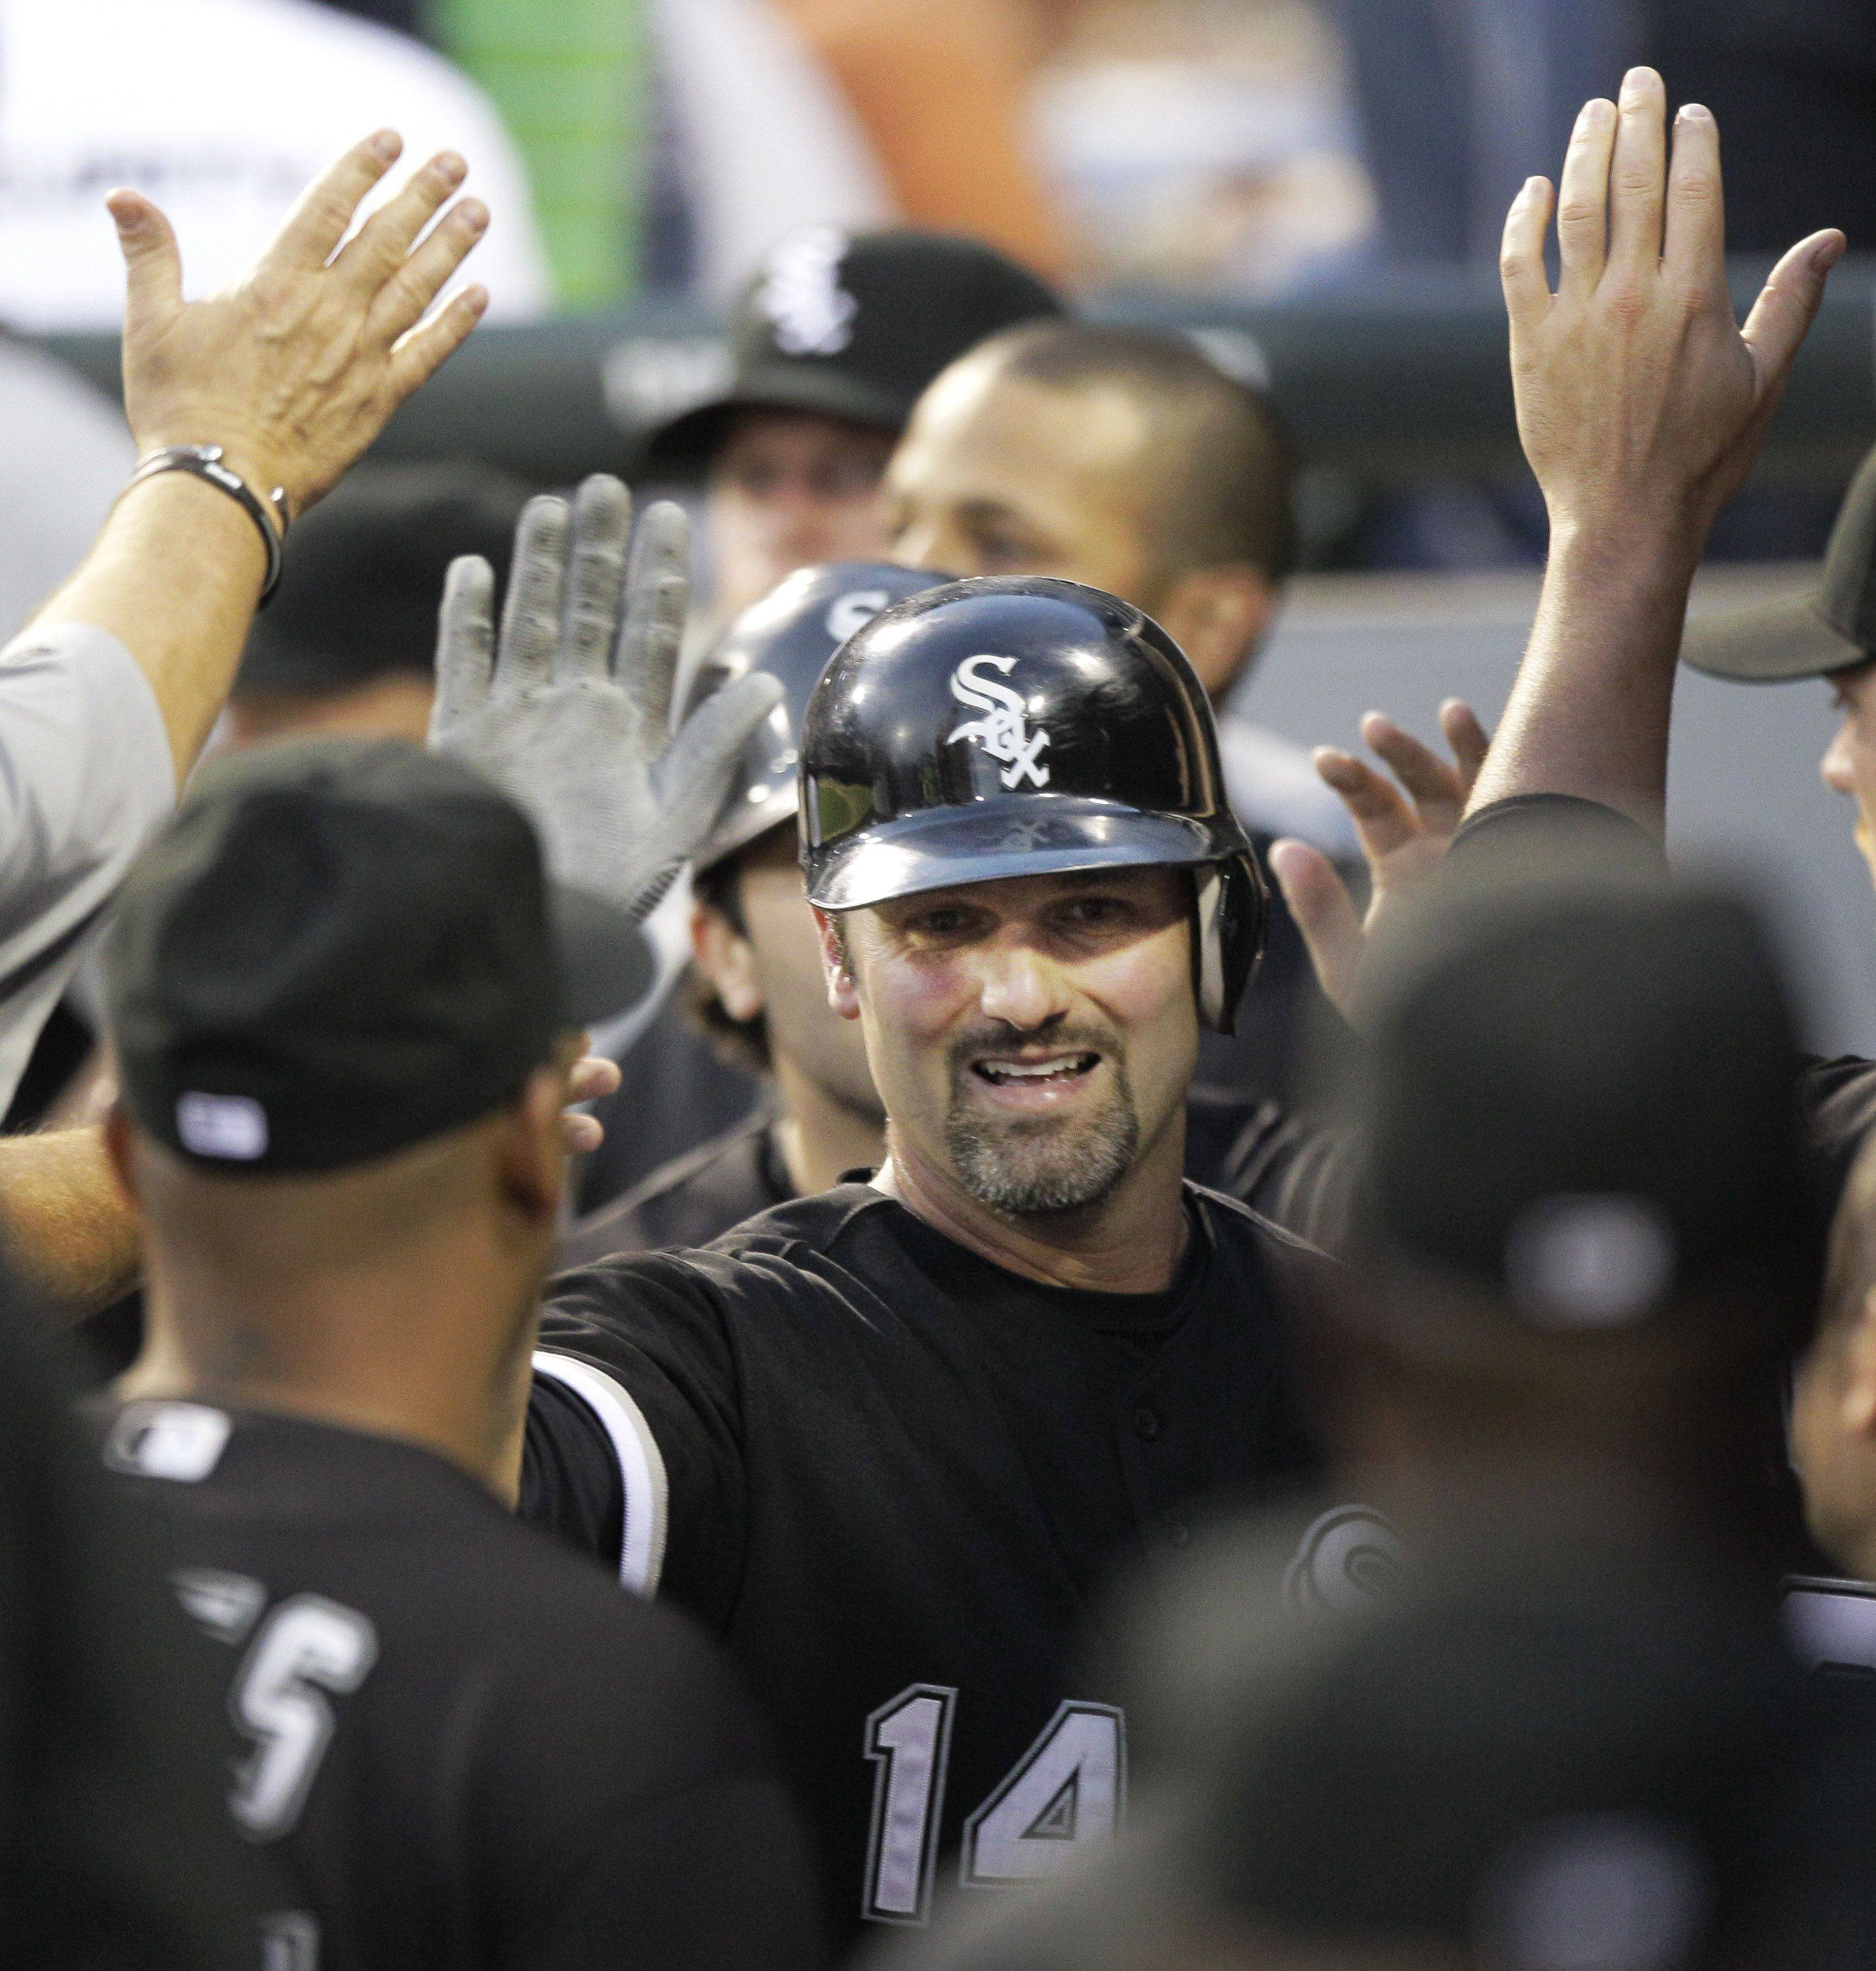 Paul Konerko is within striking distance of some of Frank Thomas' career numbers with the White Sox.